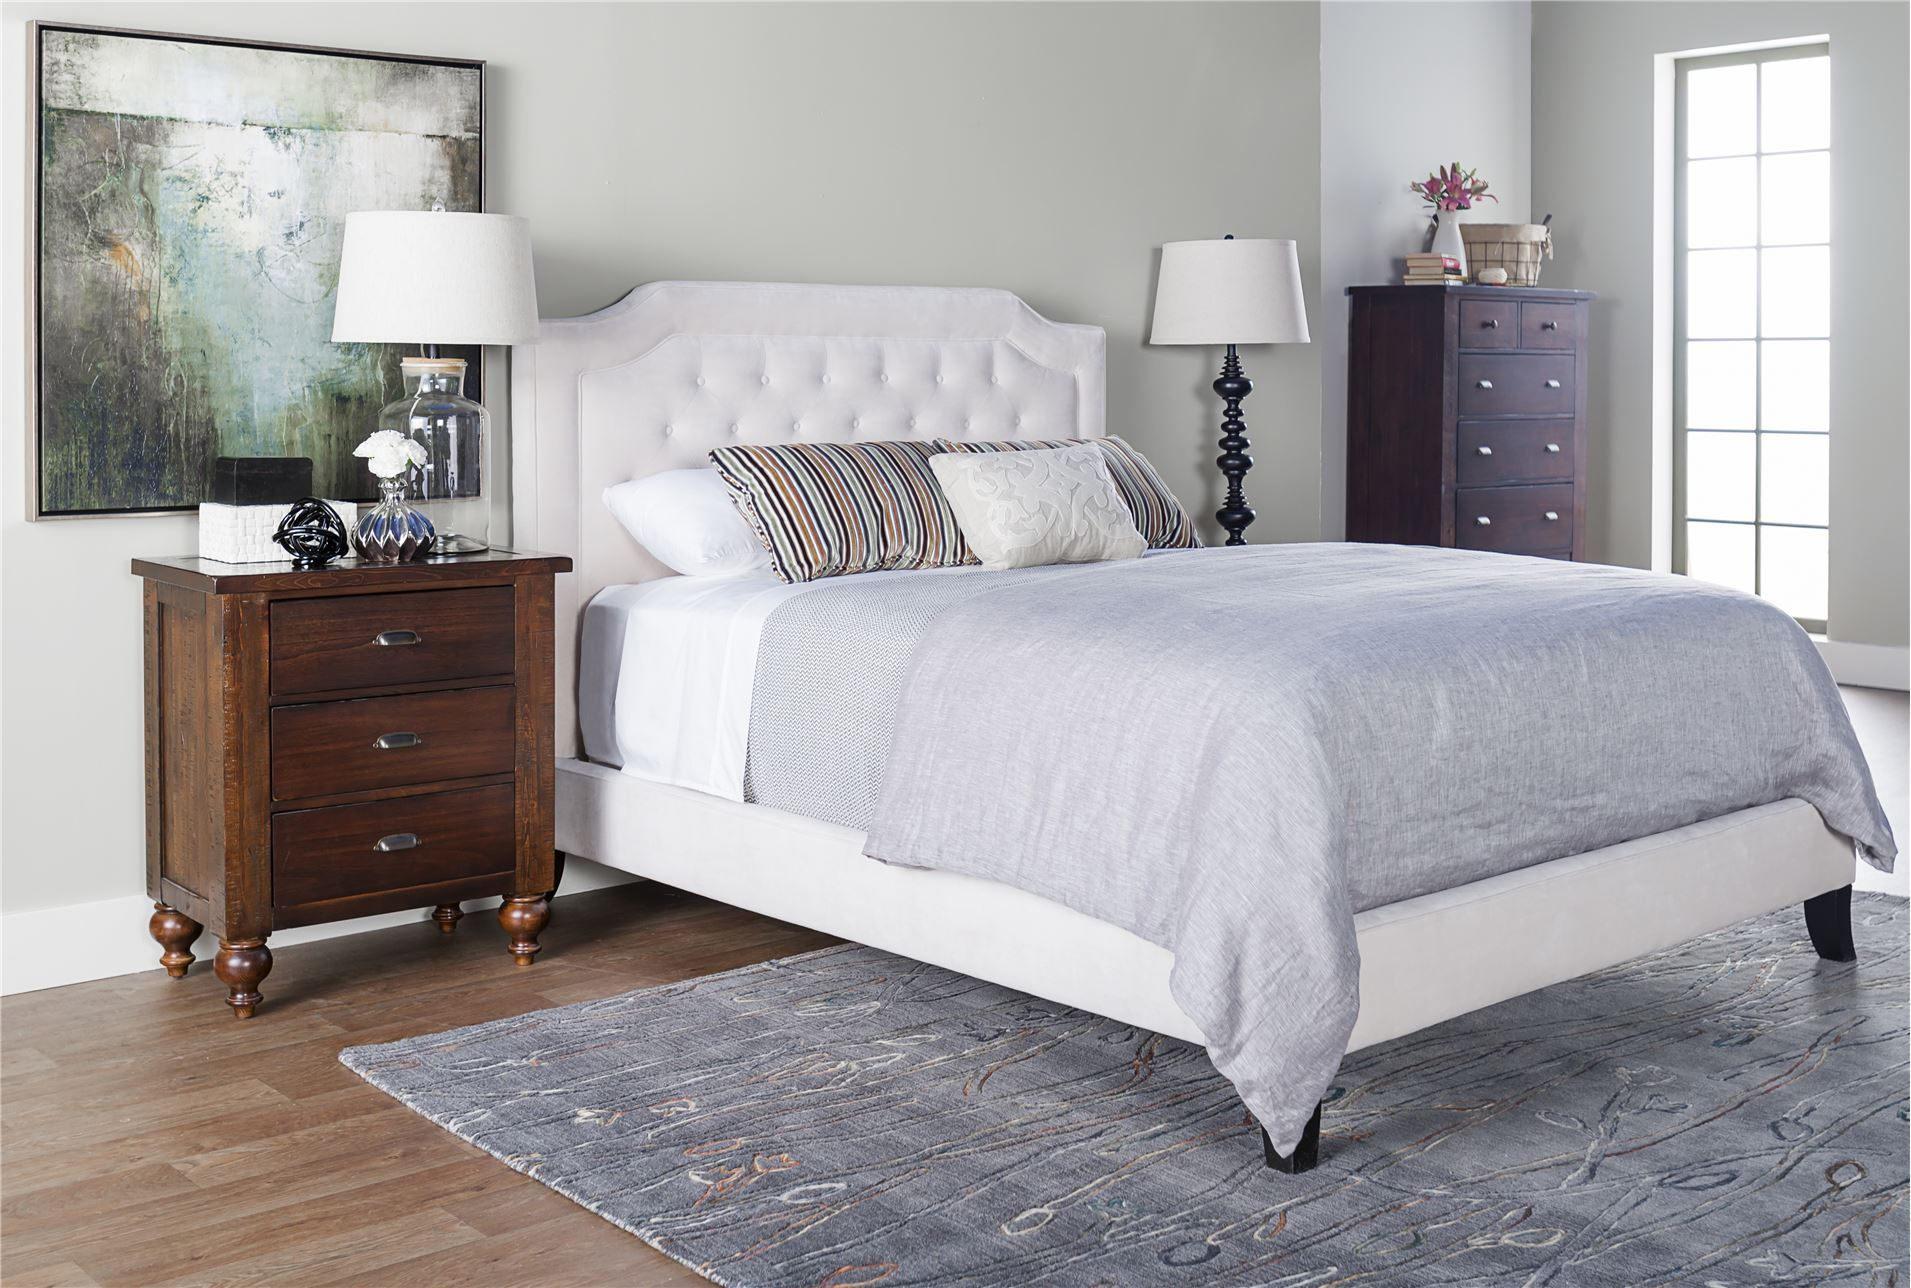 bardot fabric eastern king panel bed fabrics light gray walls and